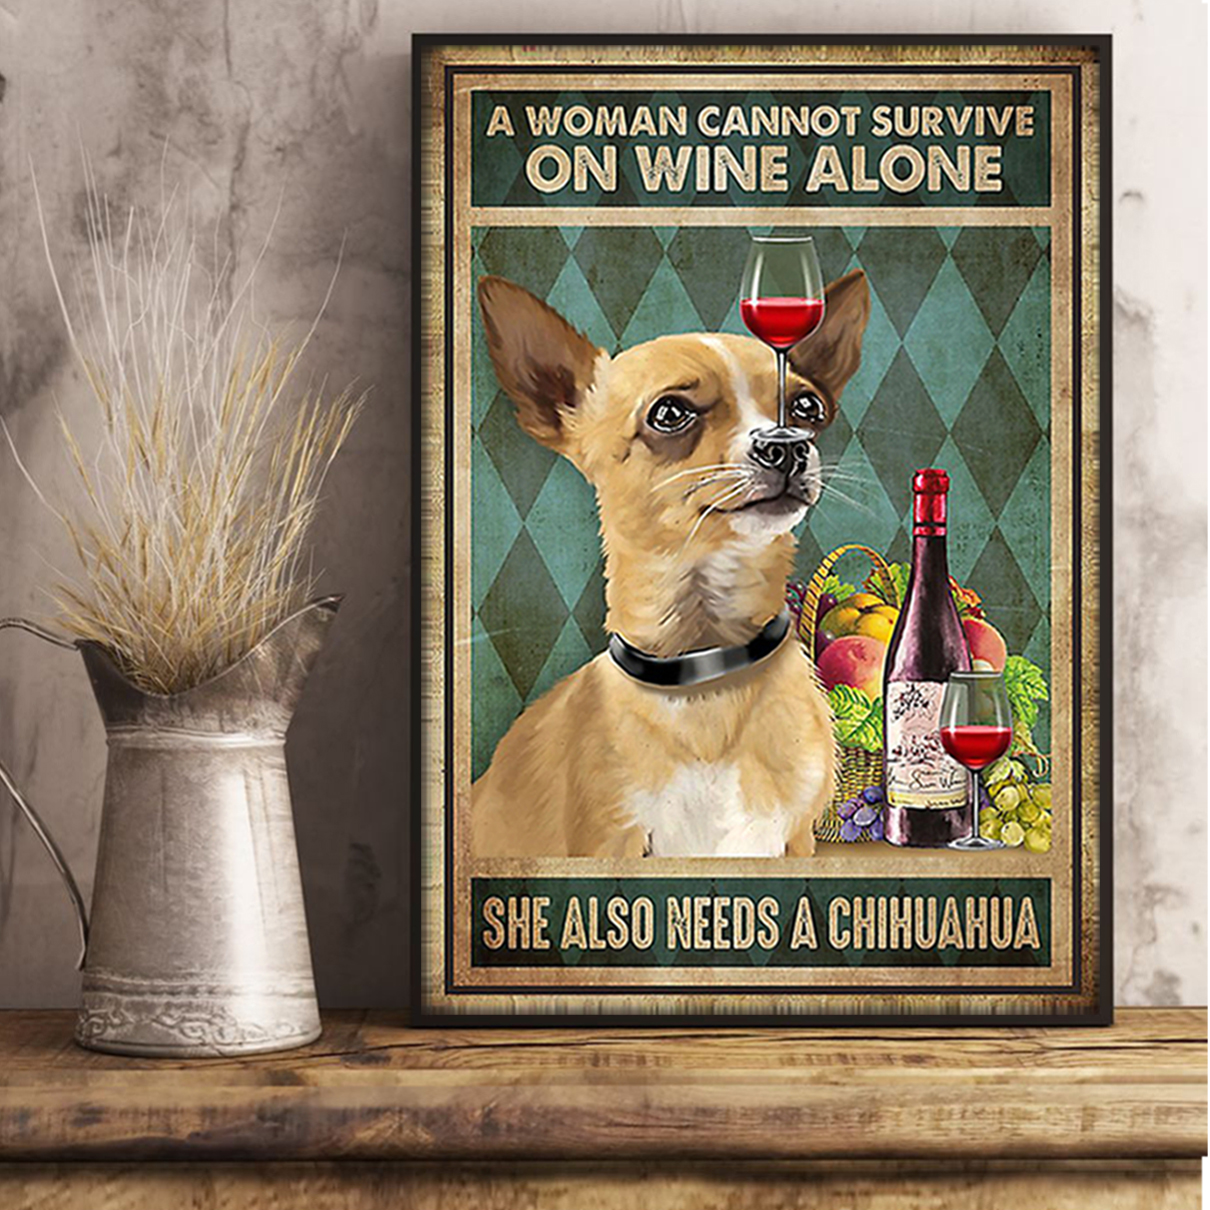 A woman cannot survive on wine alone she also needs a chihuahua poster A1